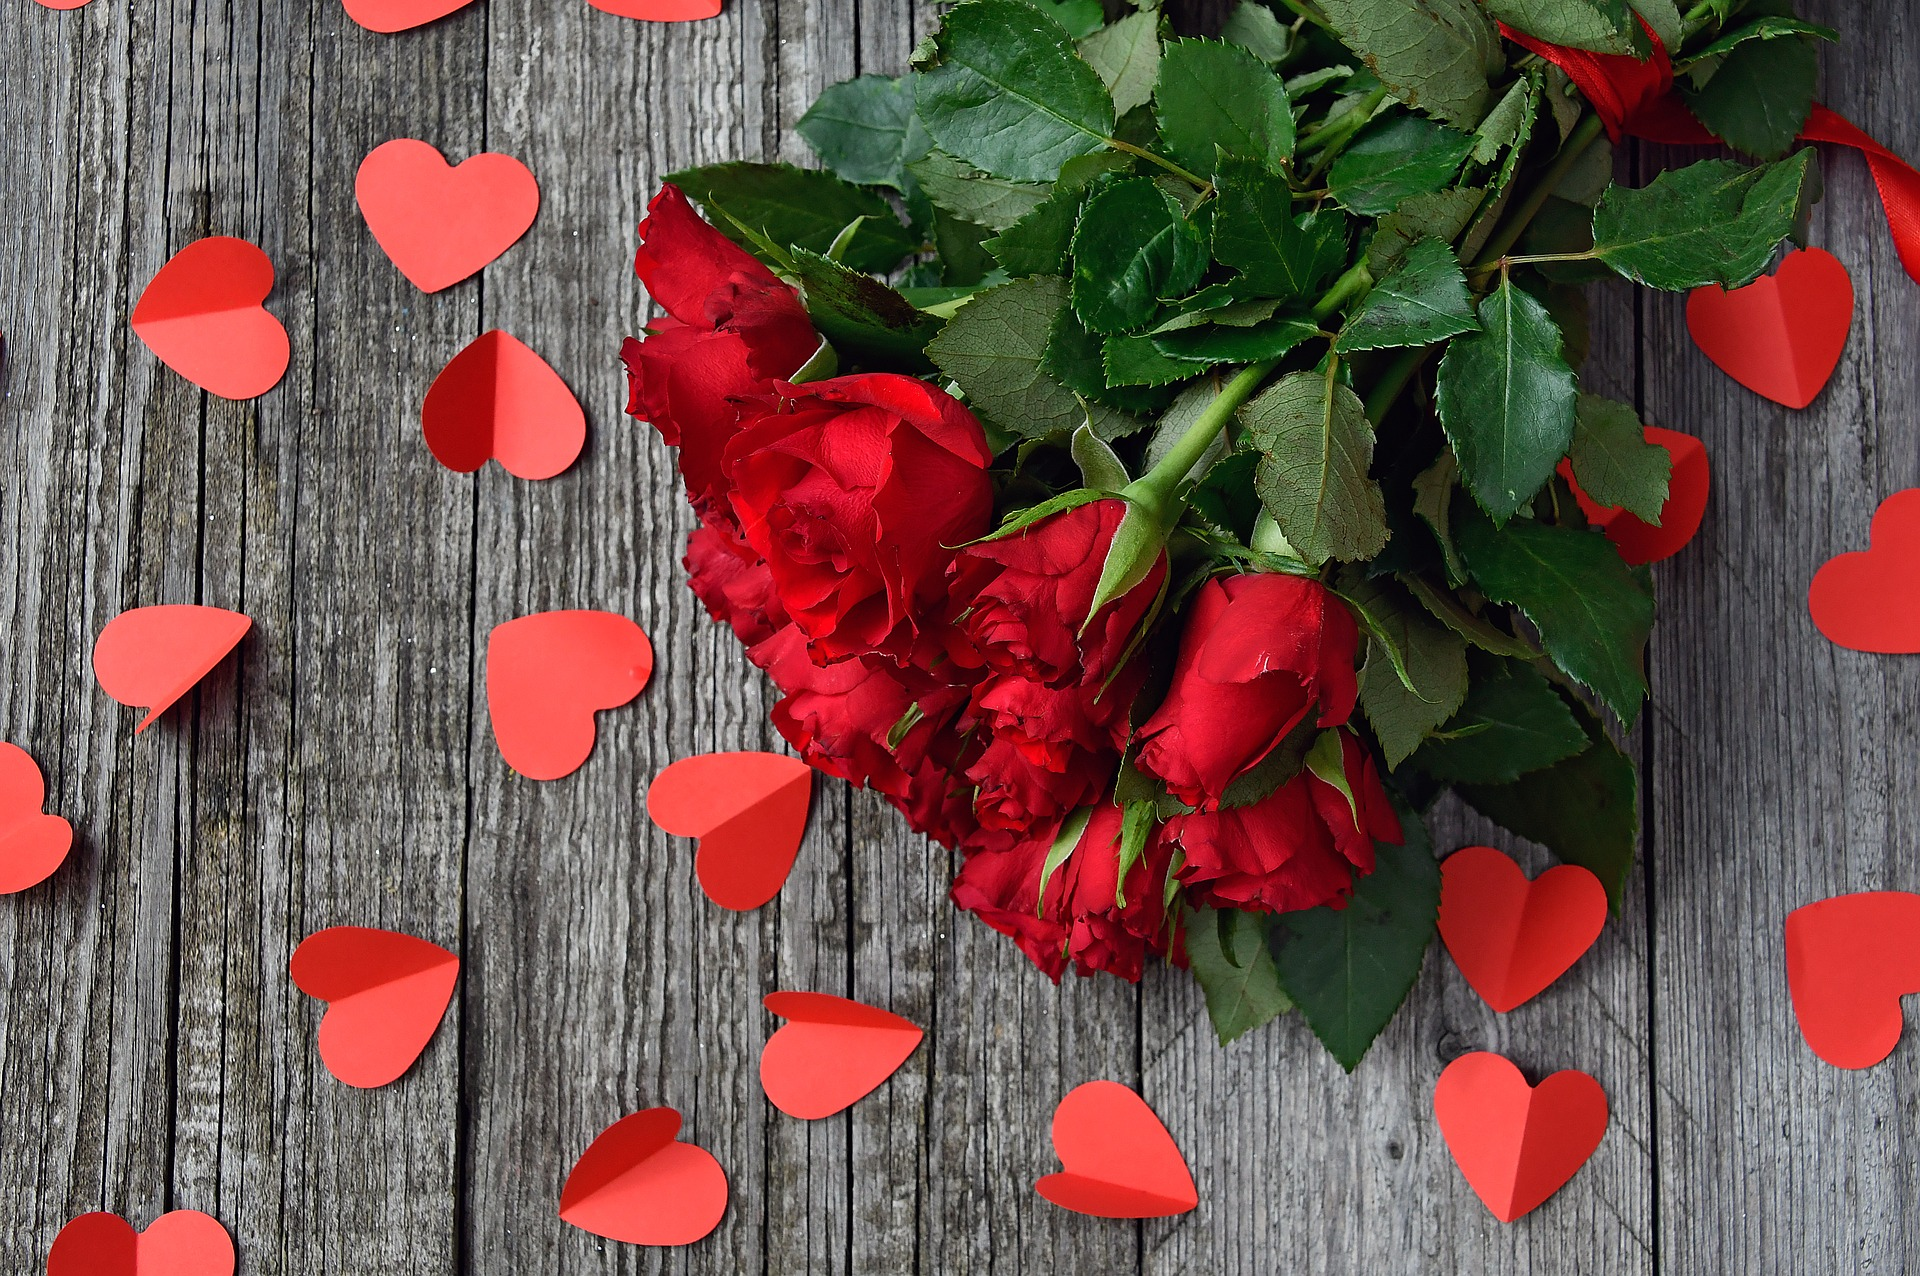 Reasons for an early Valentine's Day flower delivery